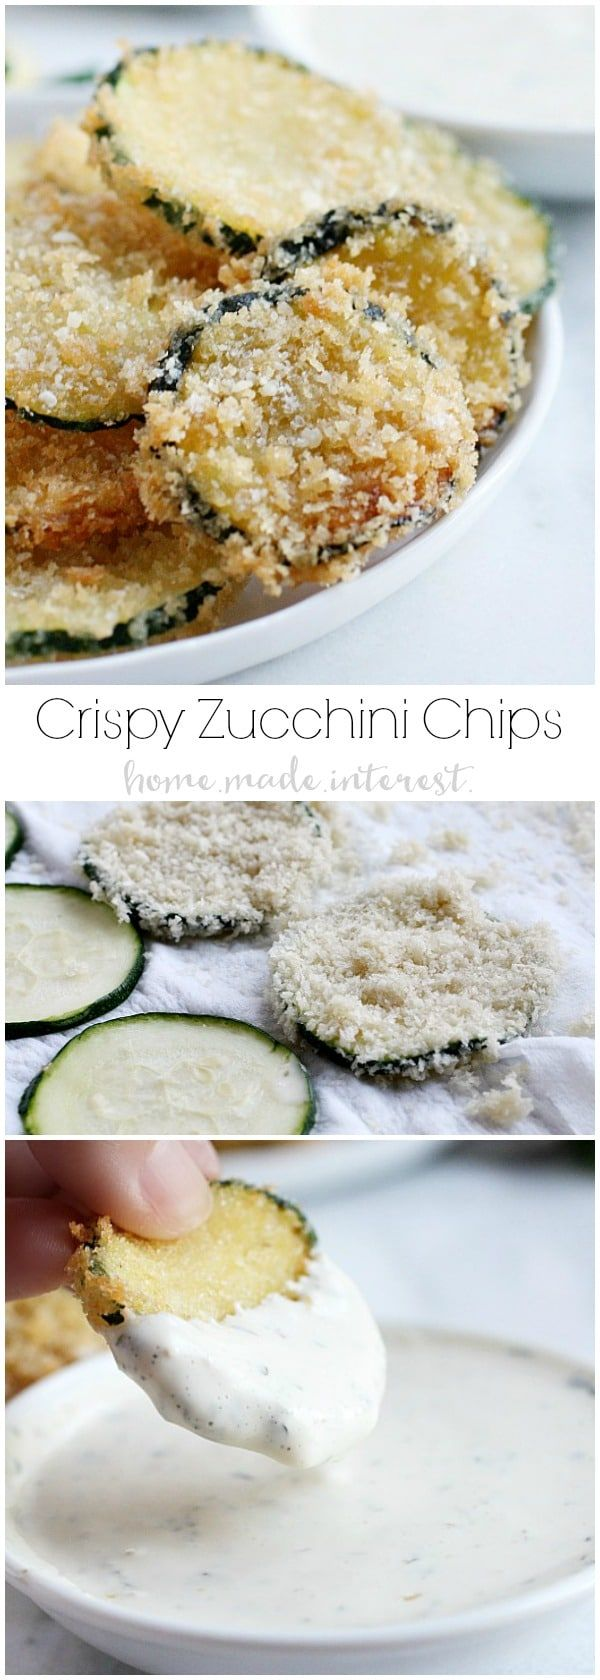 These homemade crispy zucchini chips are a copycat recipe for Maggiano's Zucchini Frittes. Thinly sliced zucchini dipped in batter and coated in Panko breadcrumbs, then fried until they are super crisp! Fried zucchini chips are amazing with a lemon aioli!